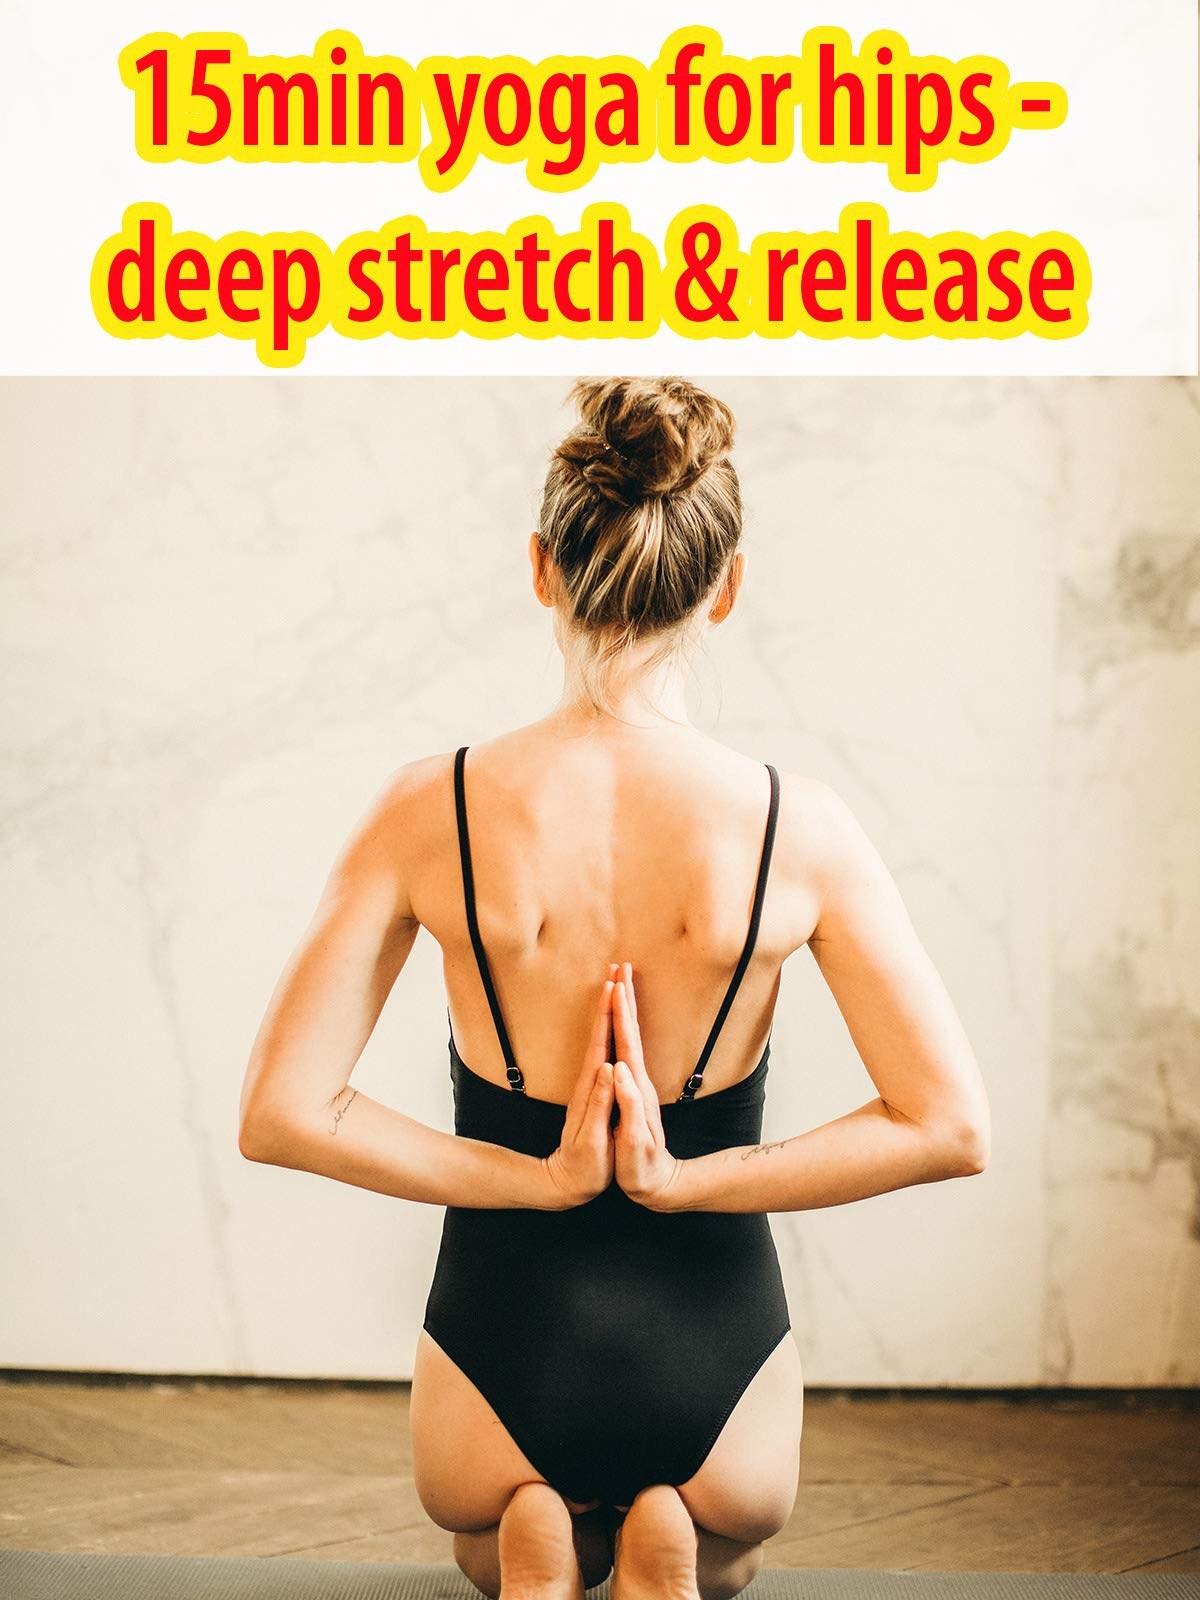 15min yoga for hips - deep stretch & release